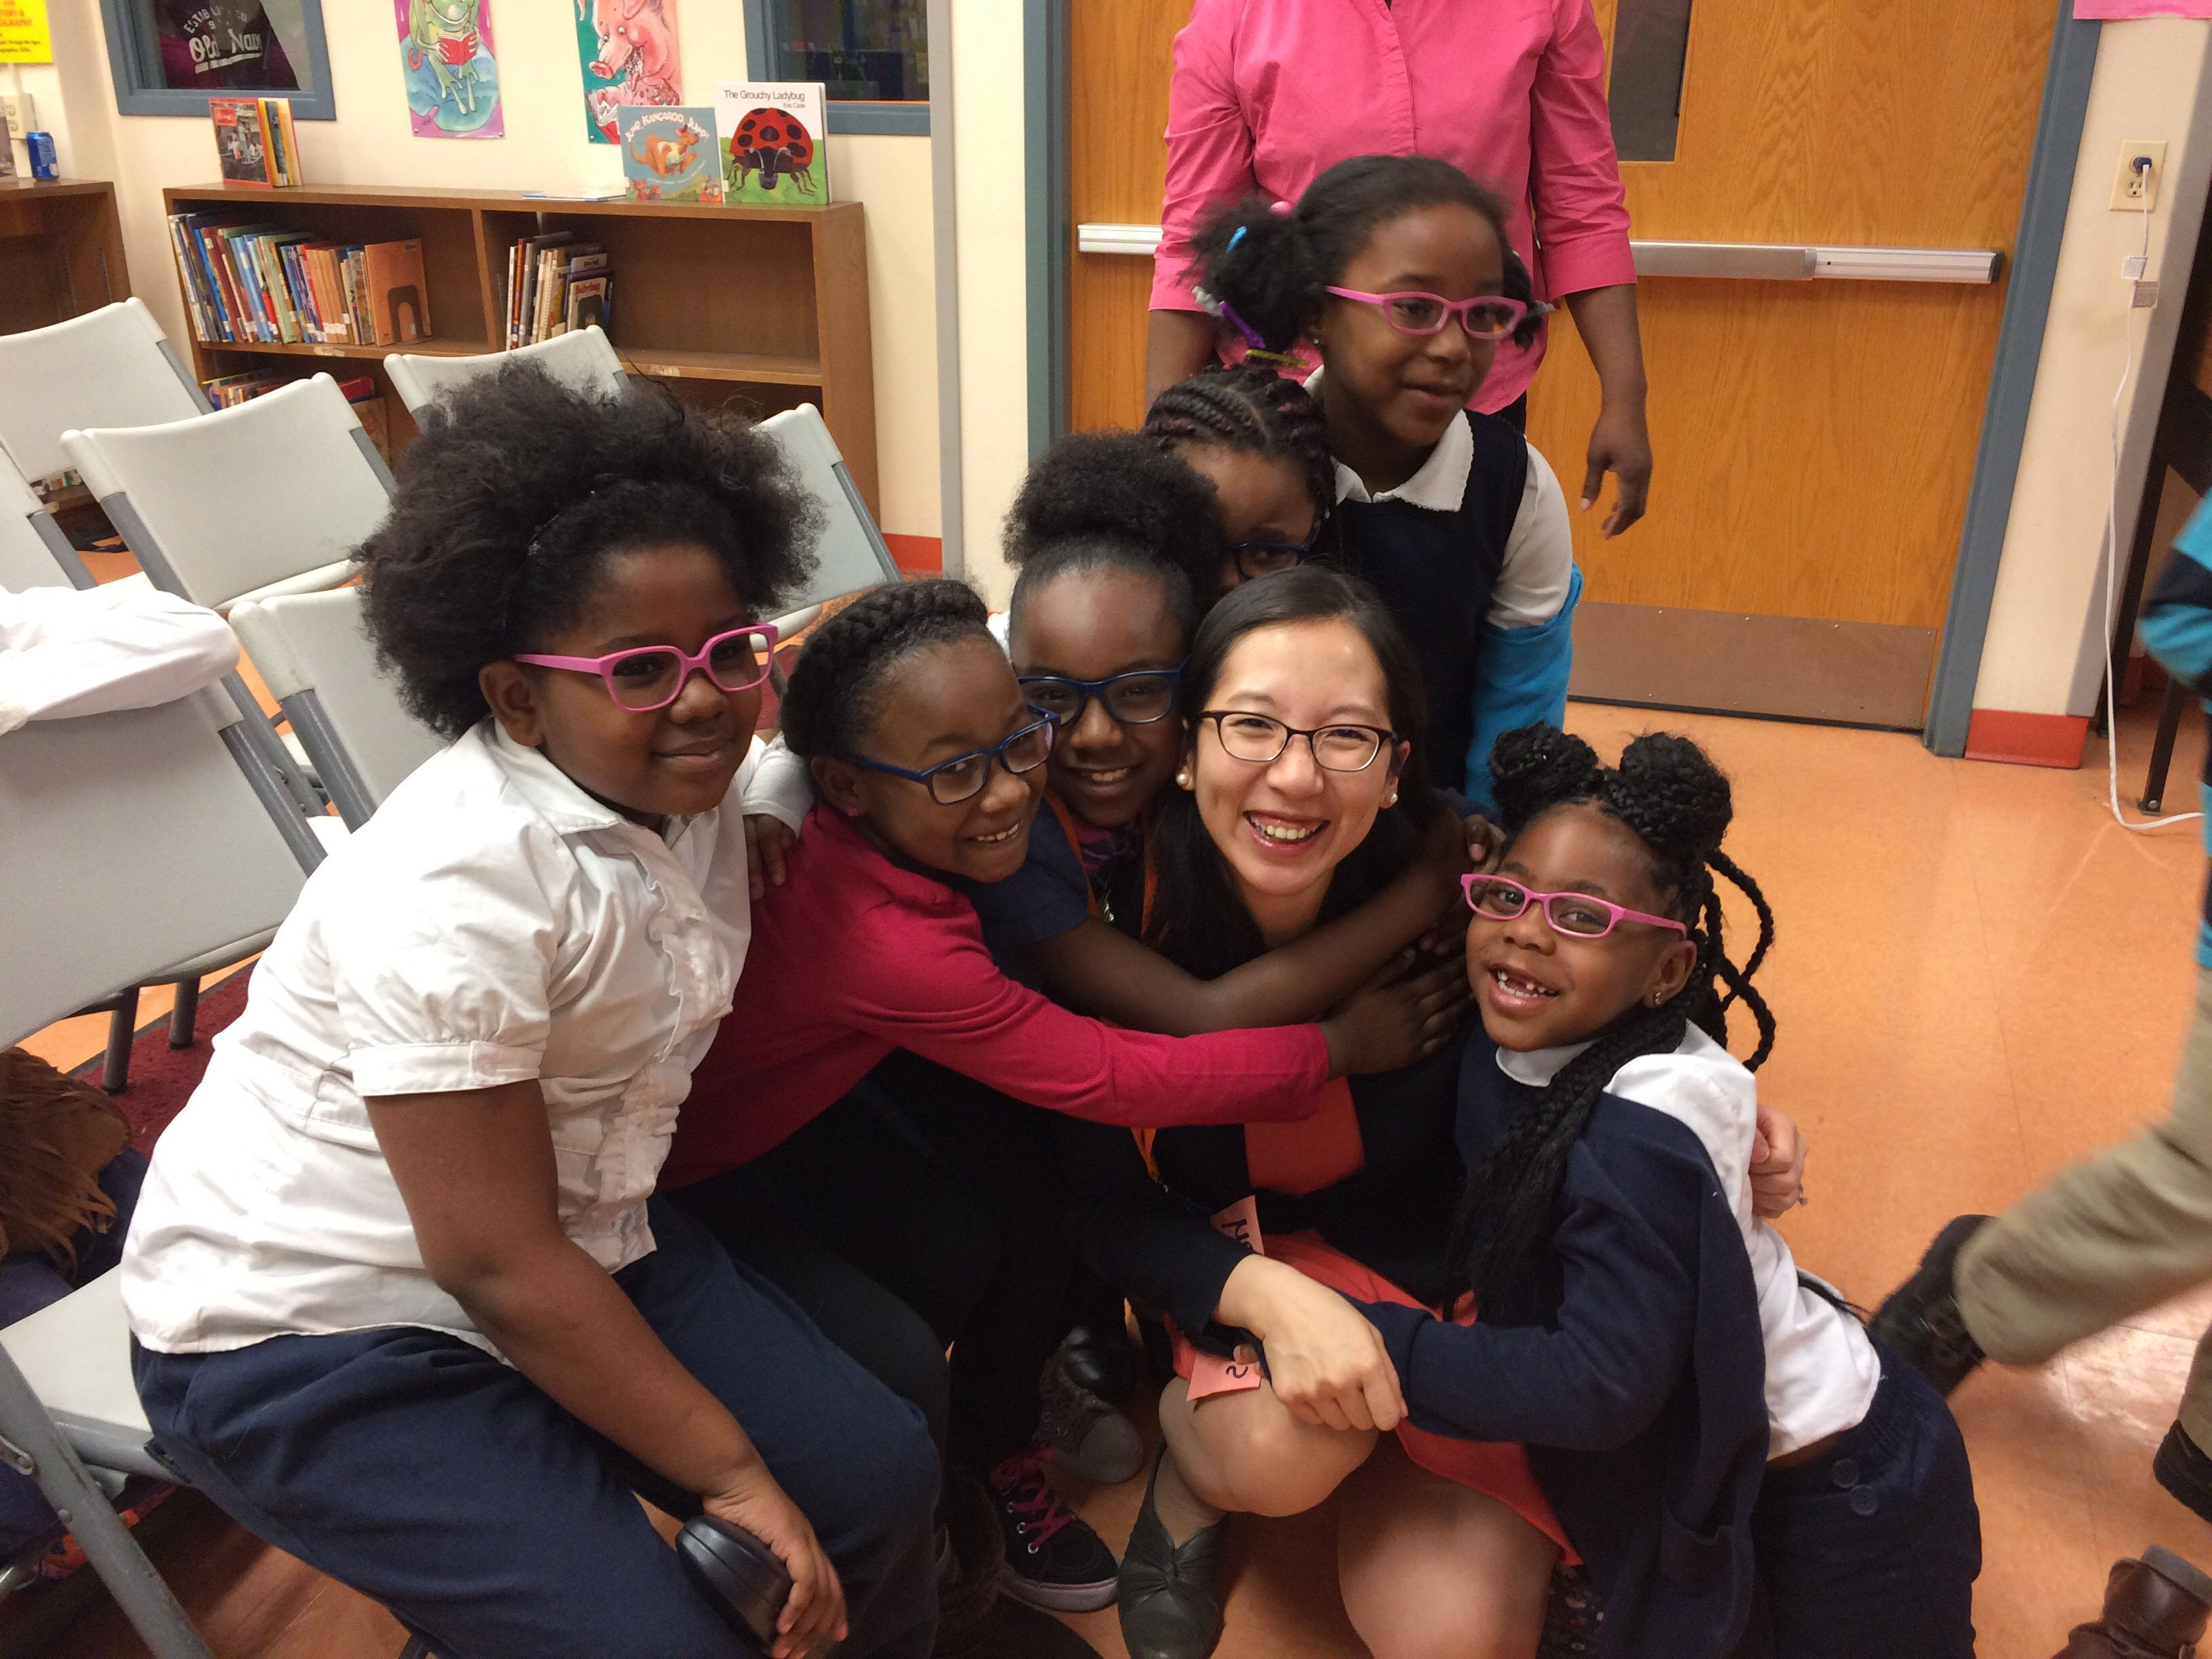 Health Commissioner Dr. Leana Wen with V4B students at Dr. Bernard Harris, Sr. Elementary